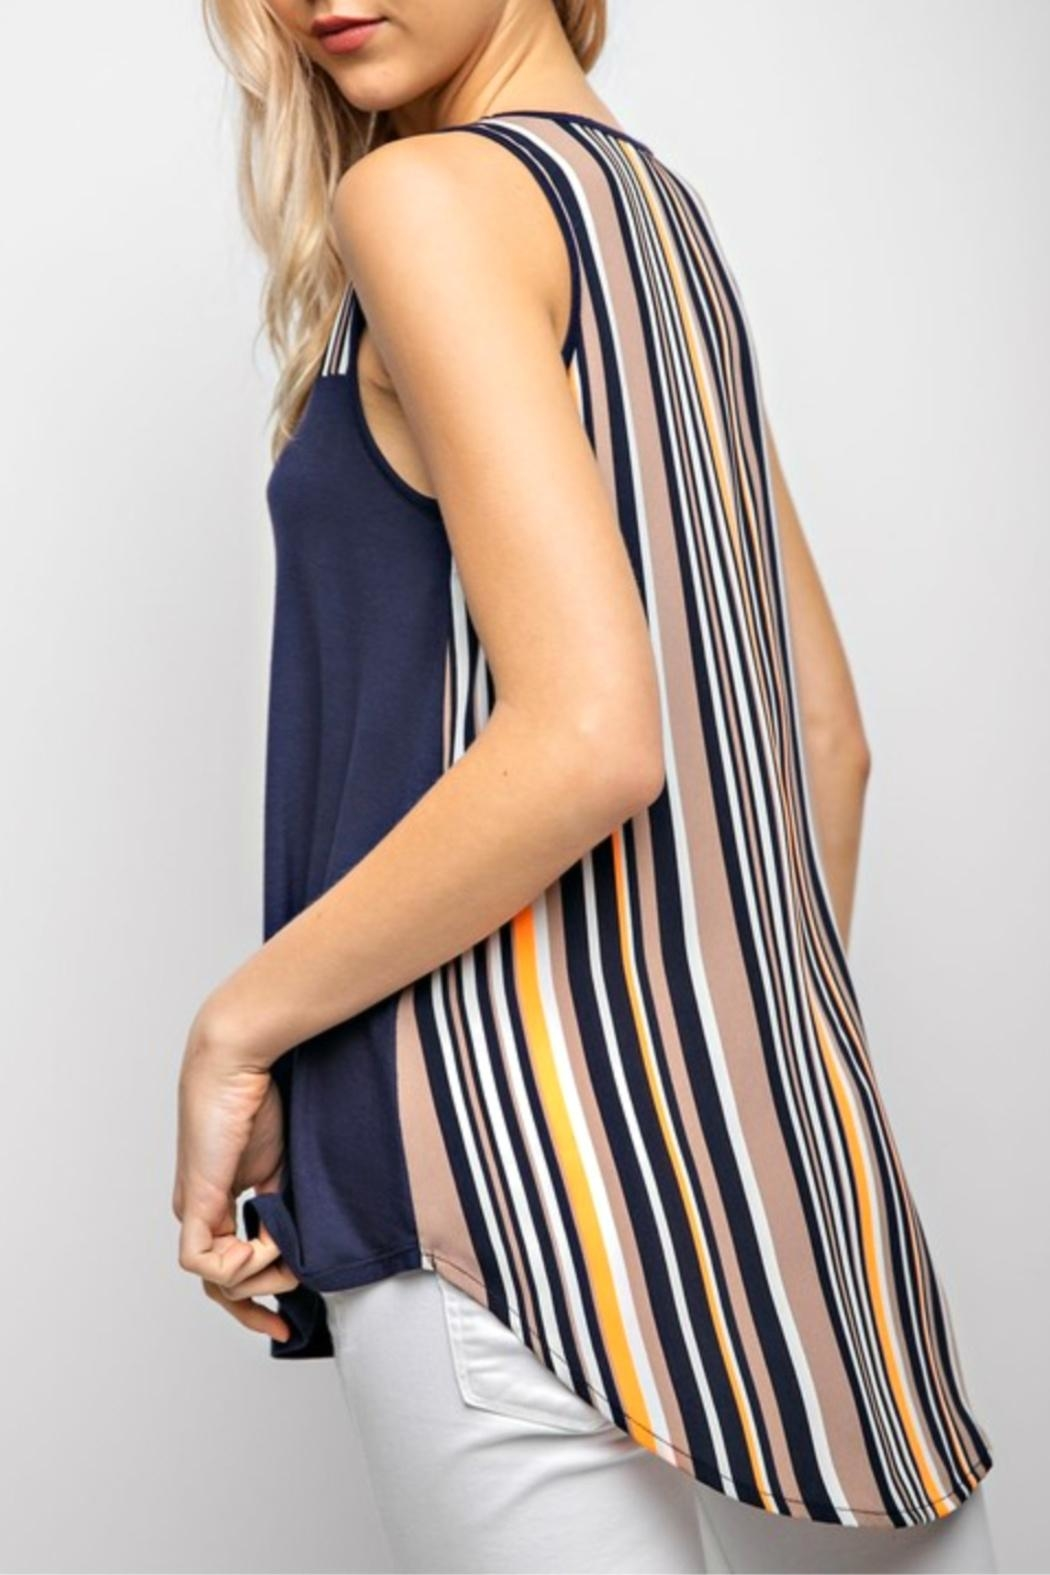 12pm by Mon Ami Navy&Stripe Tunic Tank-Top - Front Full Image